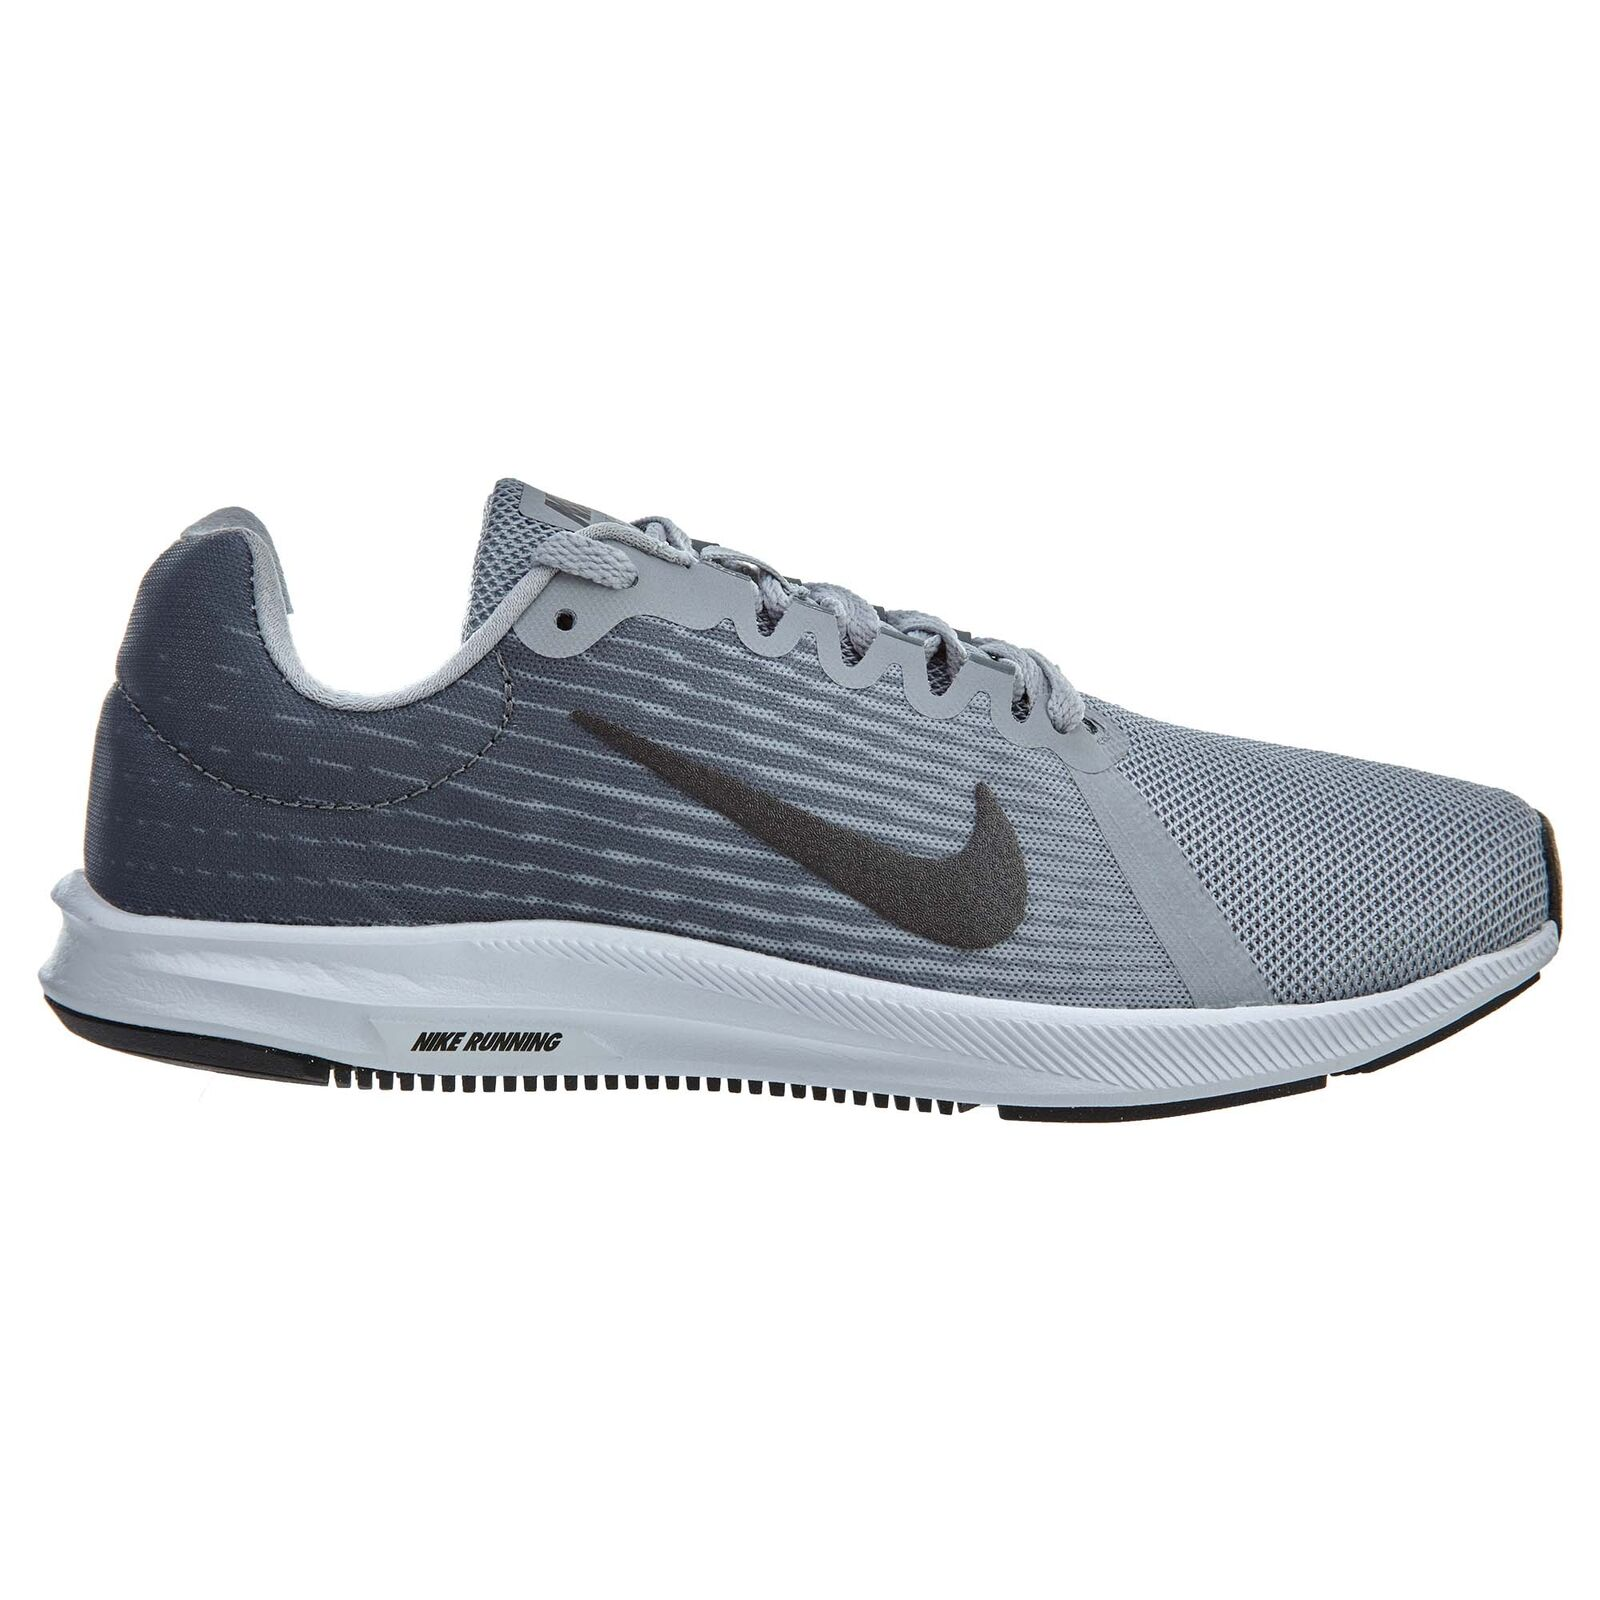 Nike Downshifter 8 Womens 908994-006 Cool Wolf Grey Mesh Running shoes Size 7